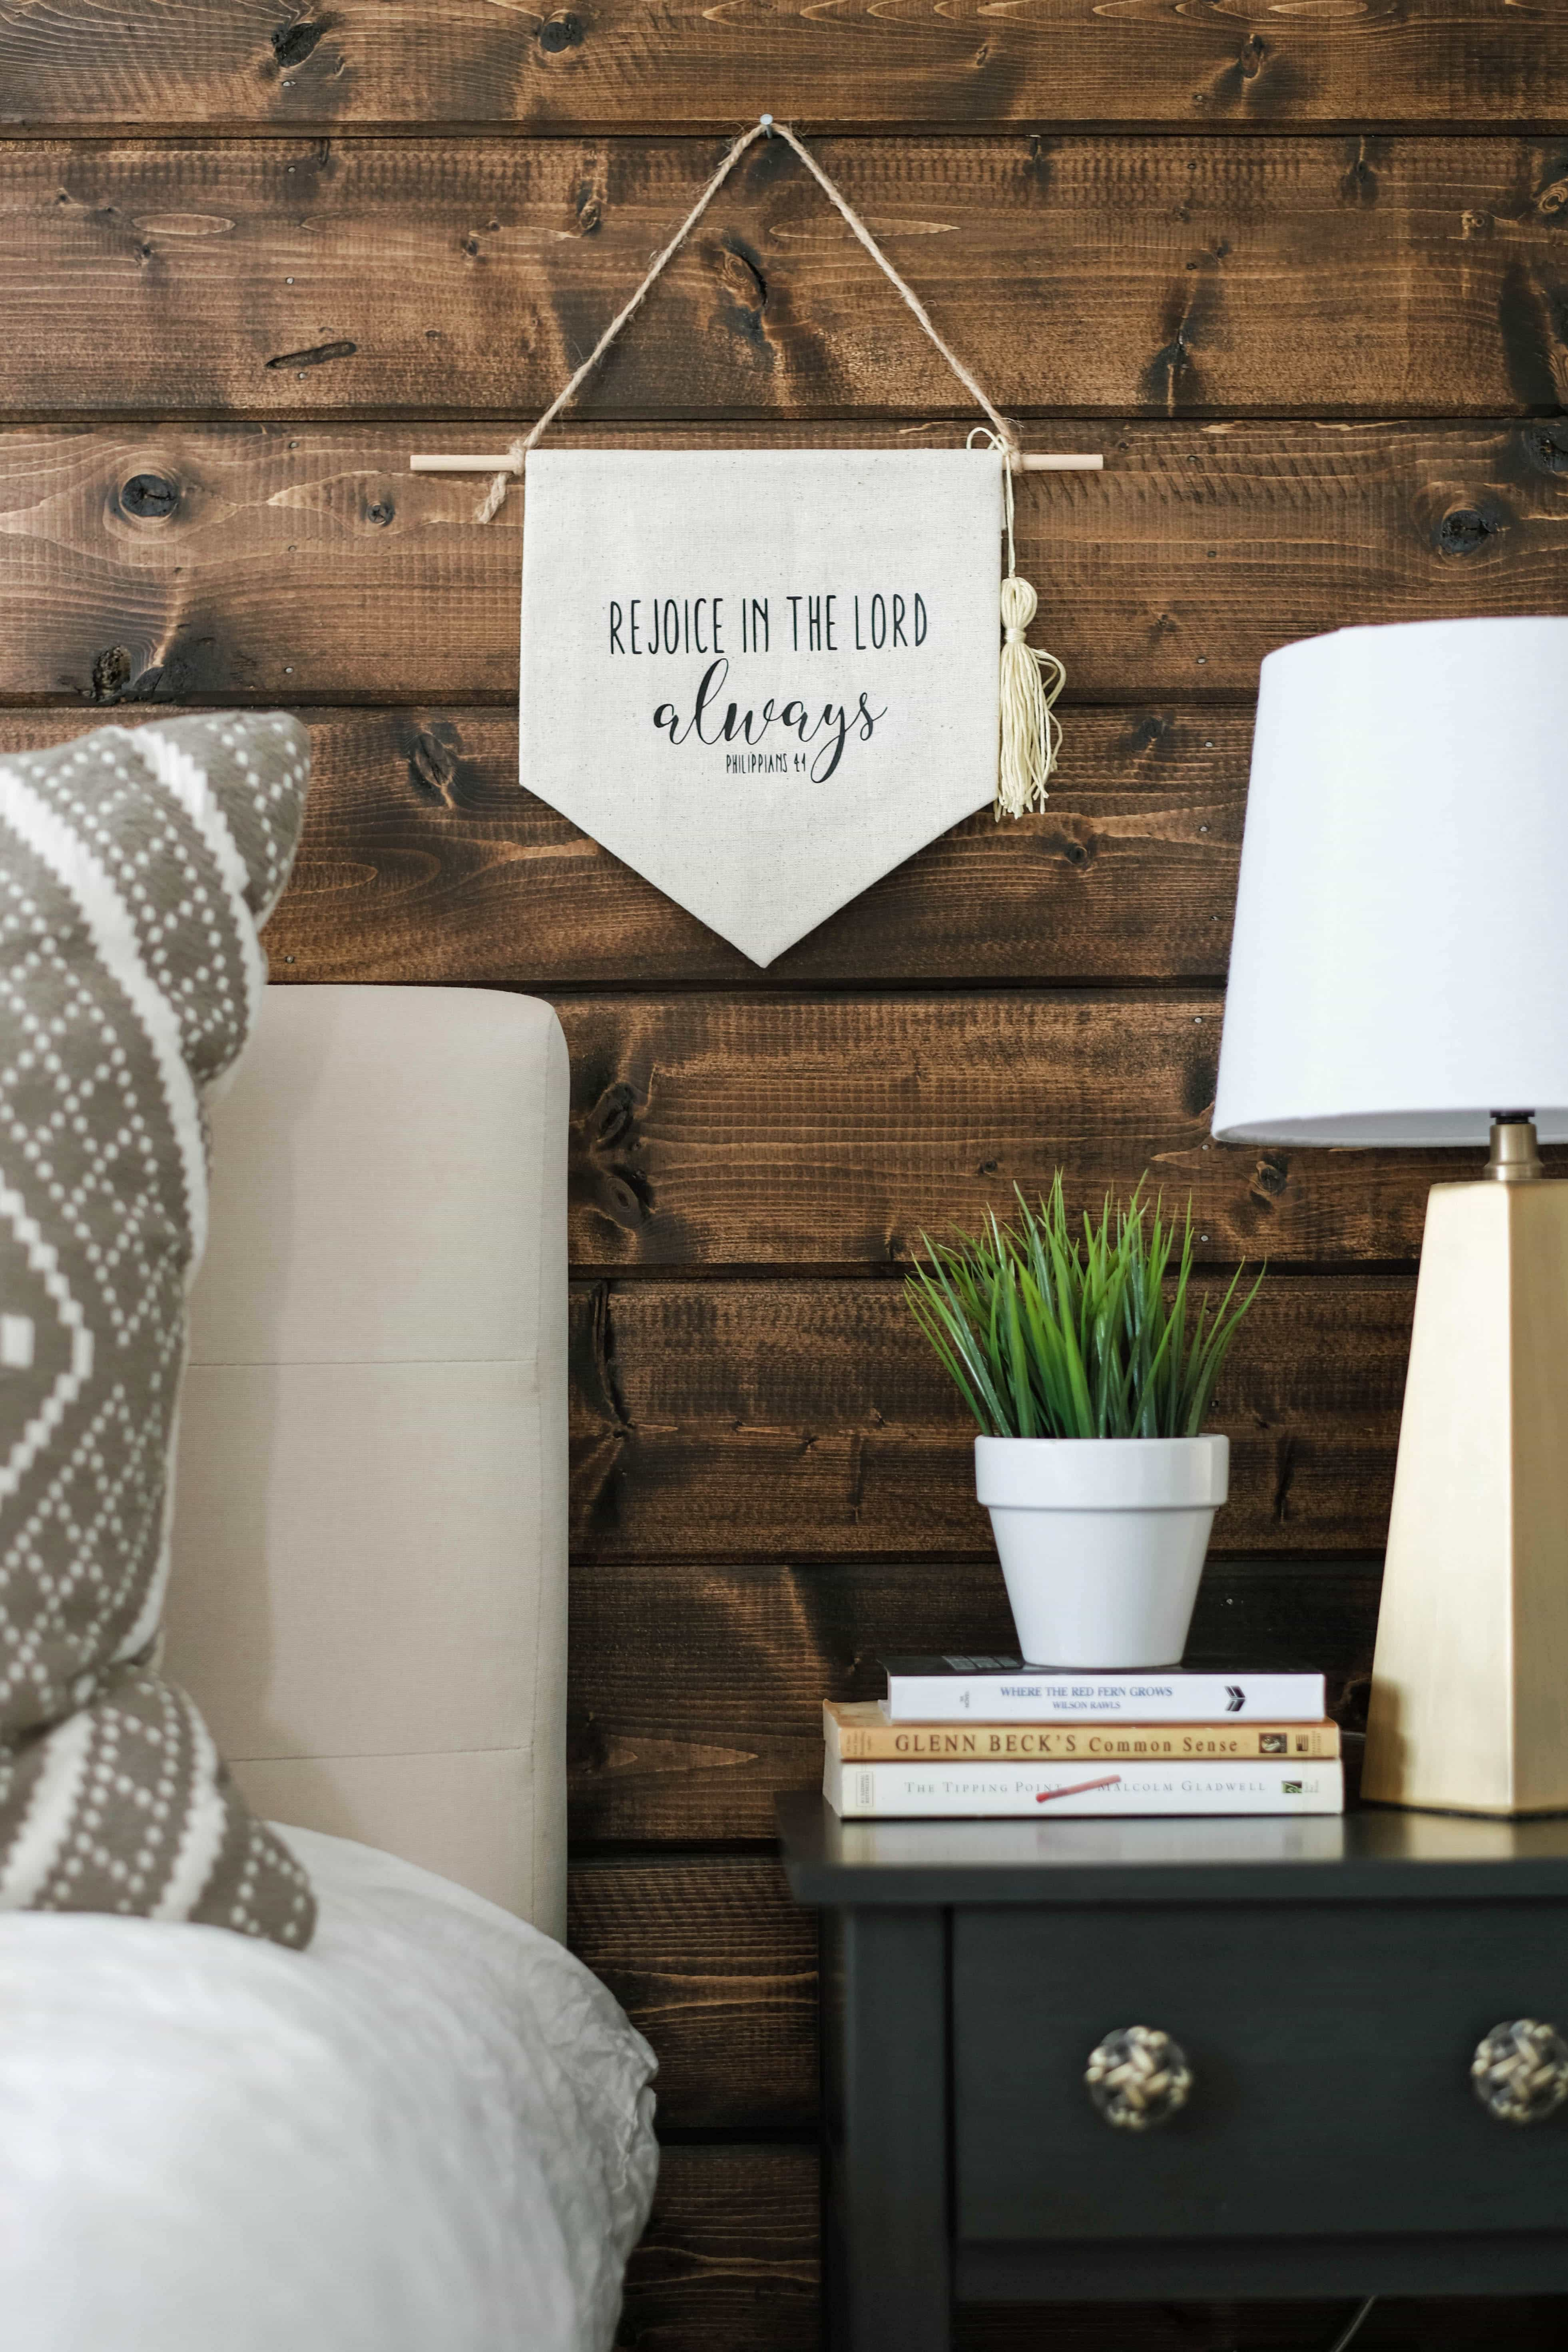 A Modern Rustic Bedroom   See how to blend two styles to create a modern rustic bedroom that is oh so cozy   Joyfully Growing Blog